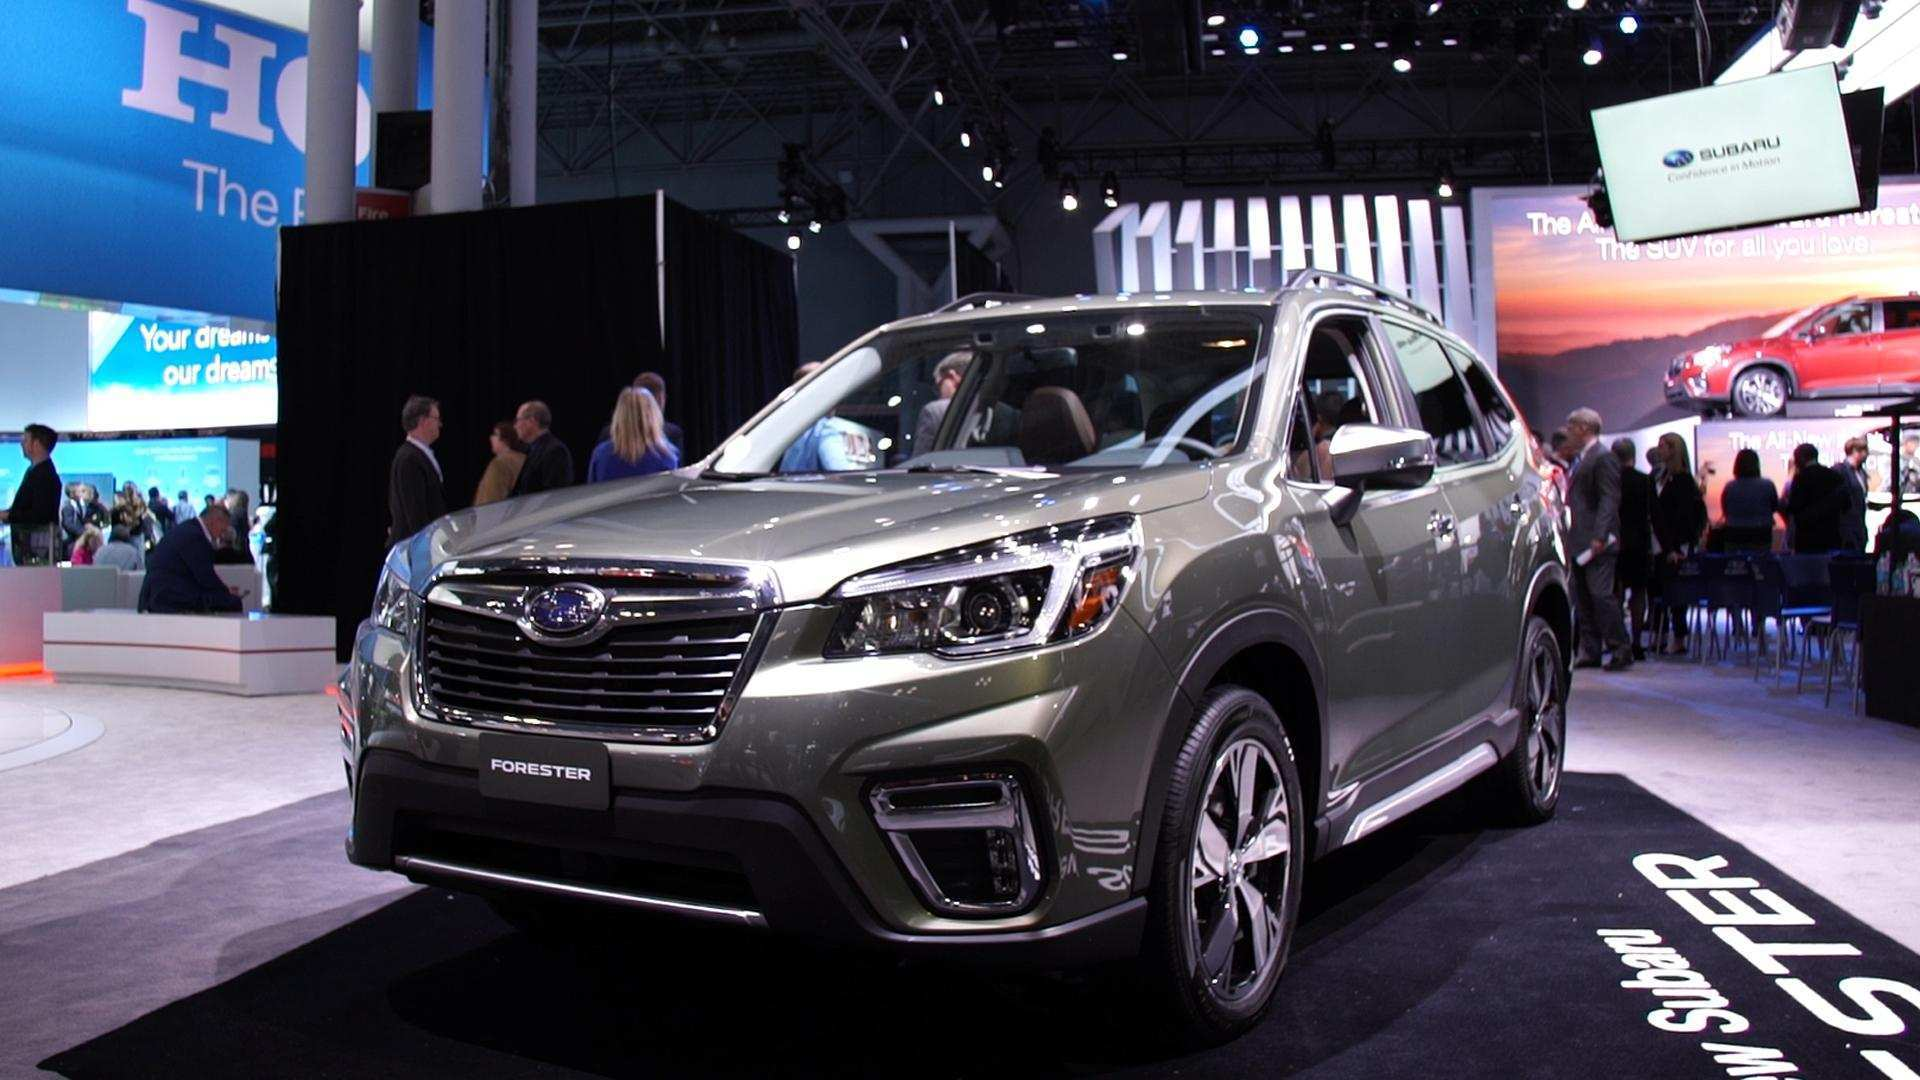 50 Best Subaru Forester 2019 Gas Mileage New Concept